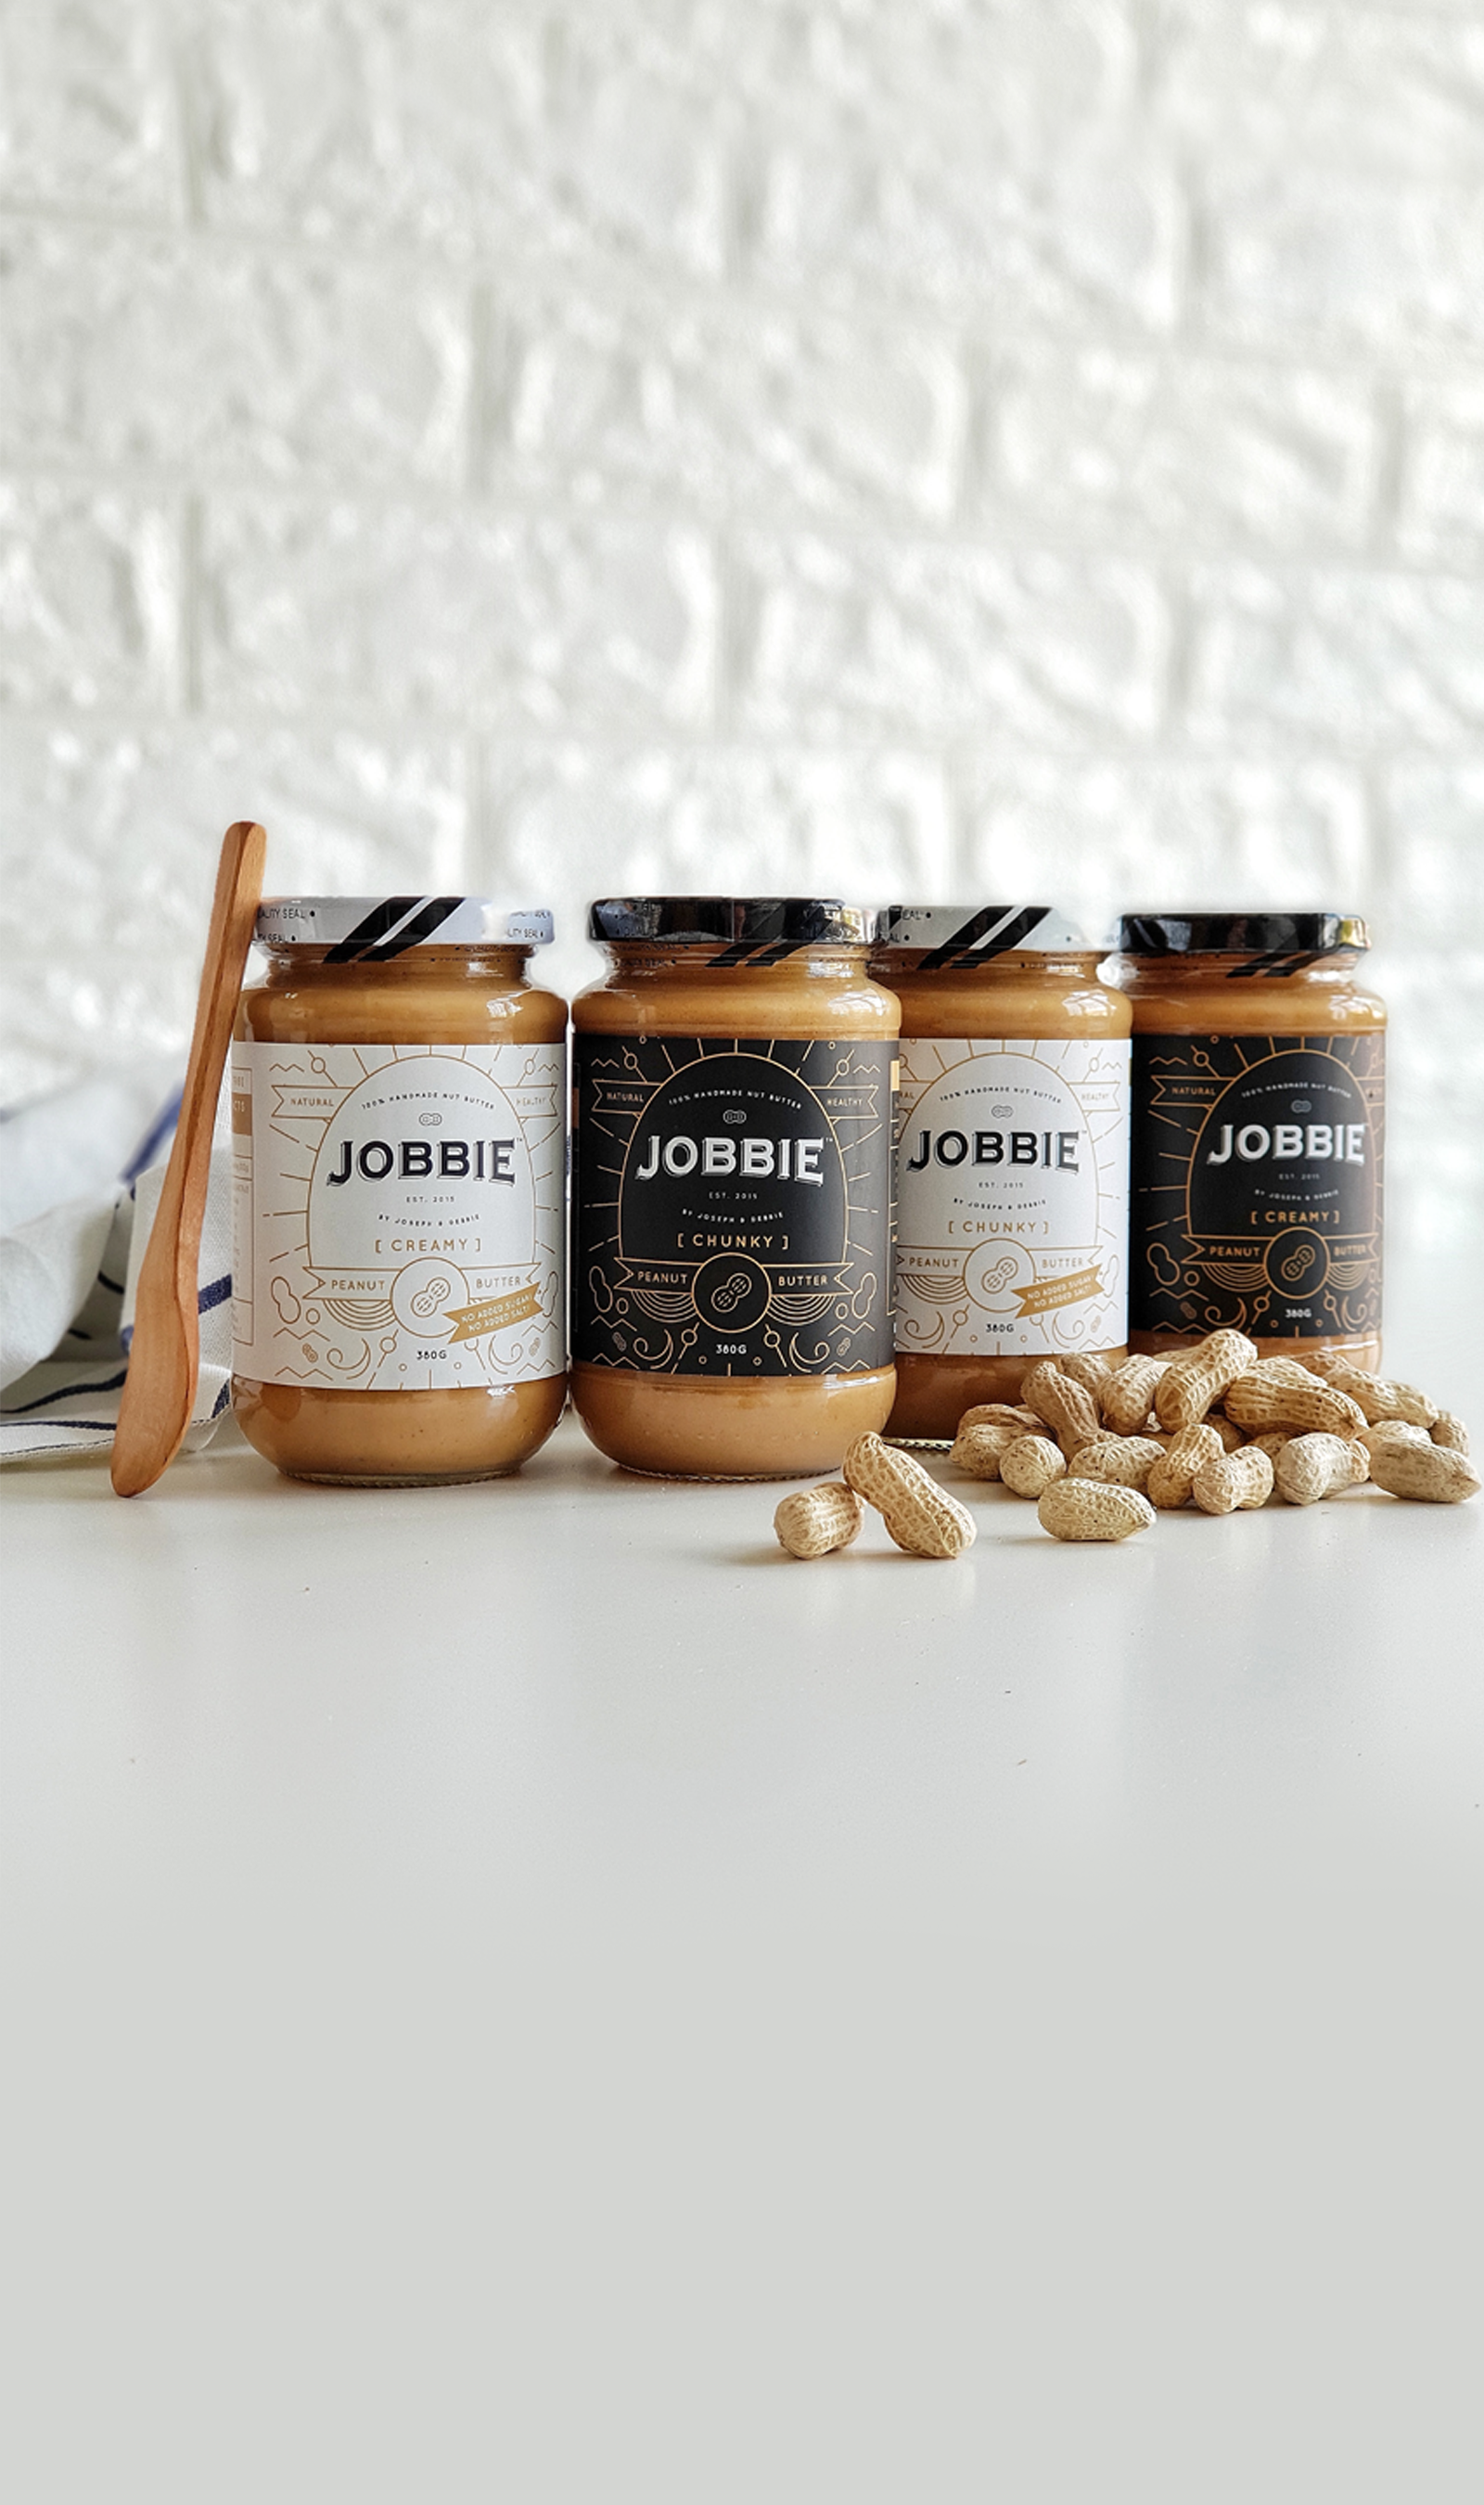 JOBBIE NUT BUTTER - Get fresh handmade peanut butter delivered to your doorstep |